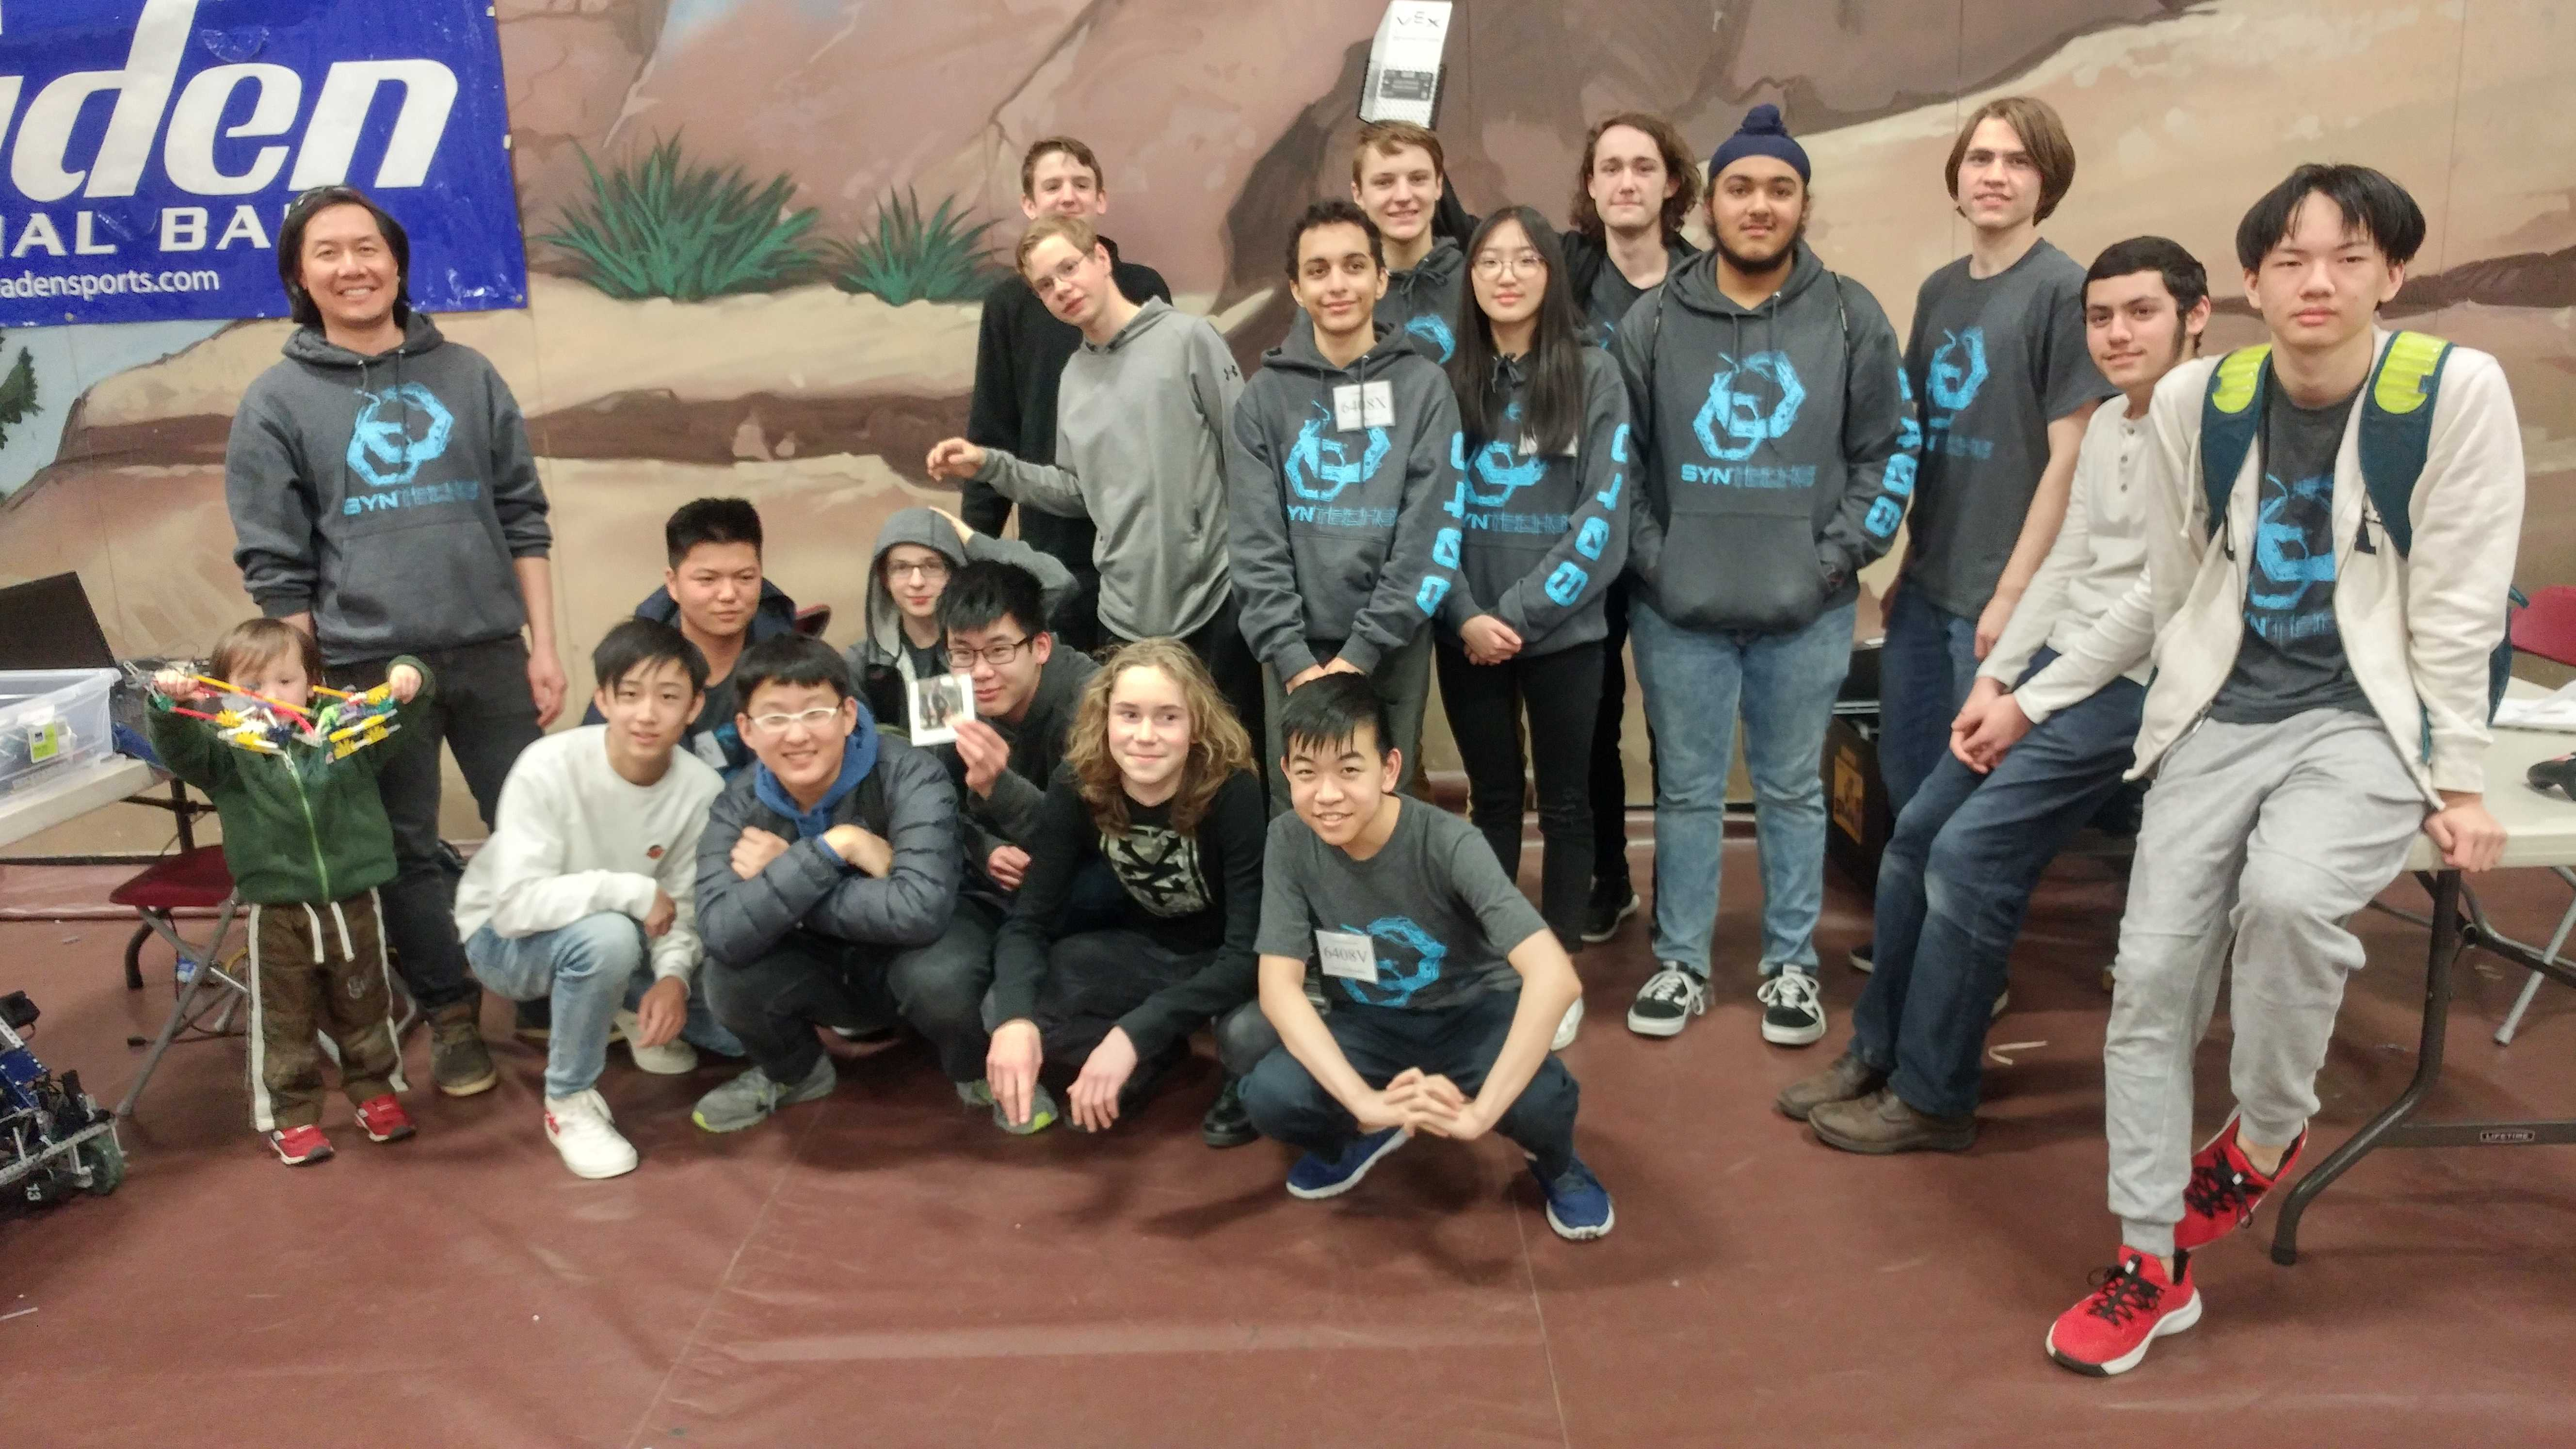 Syntechs Robotics Club image 2.jpg